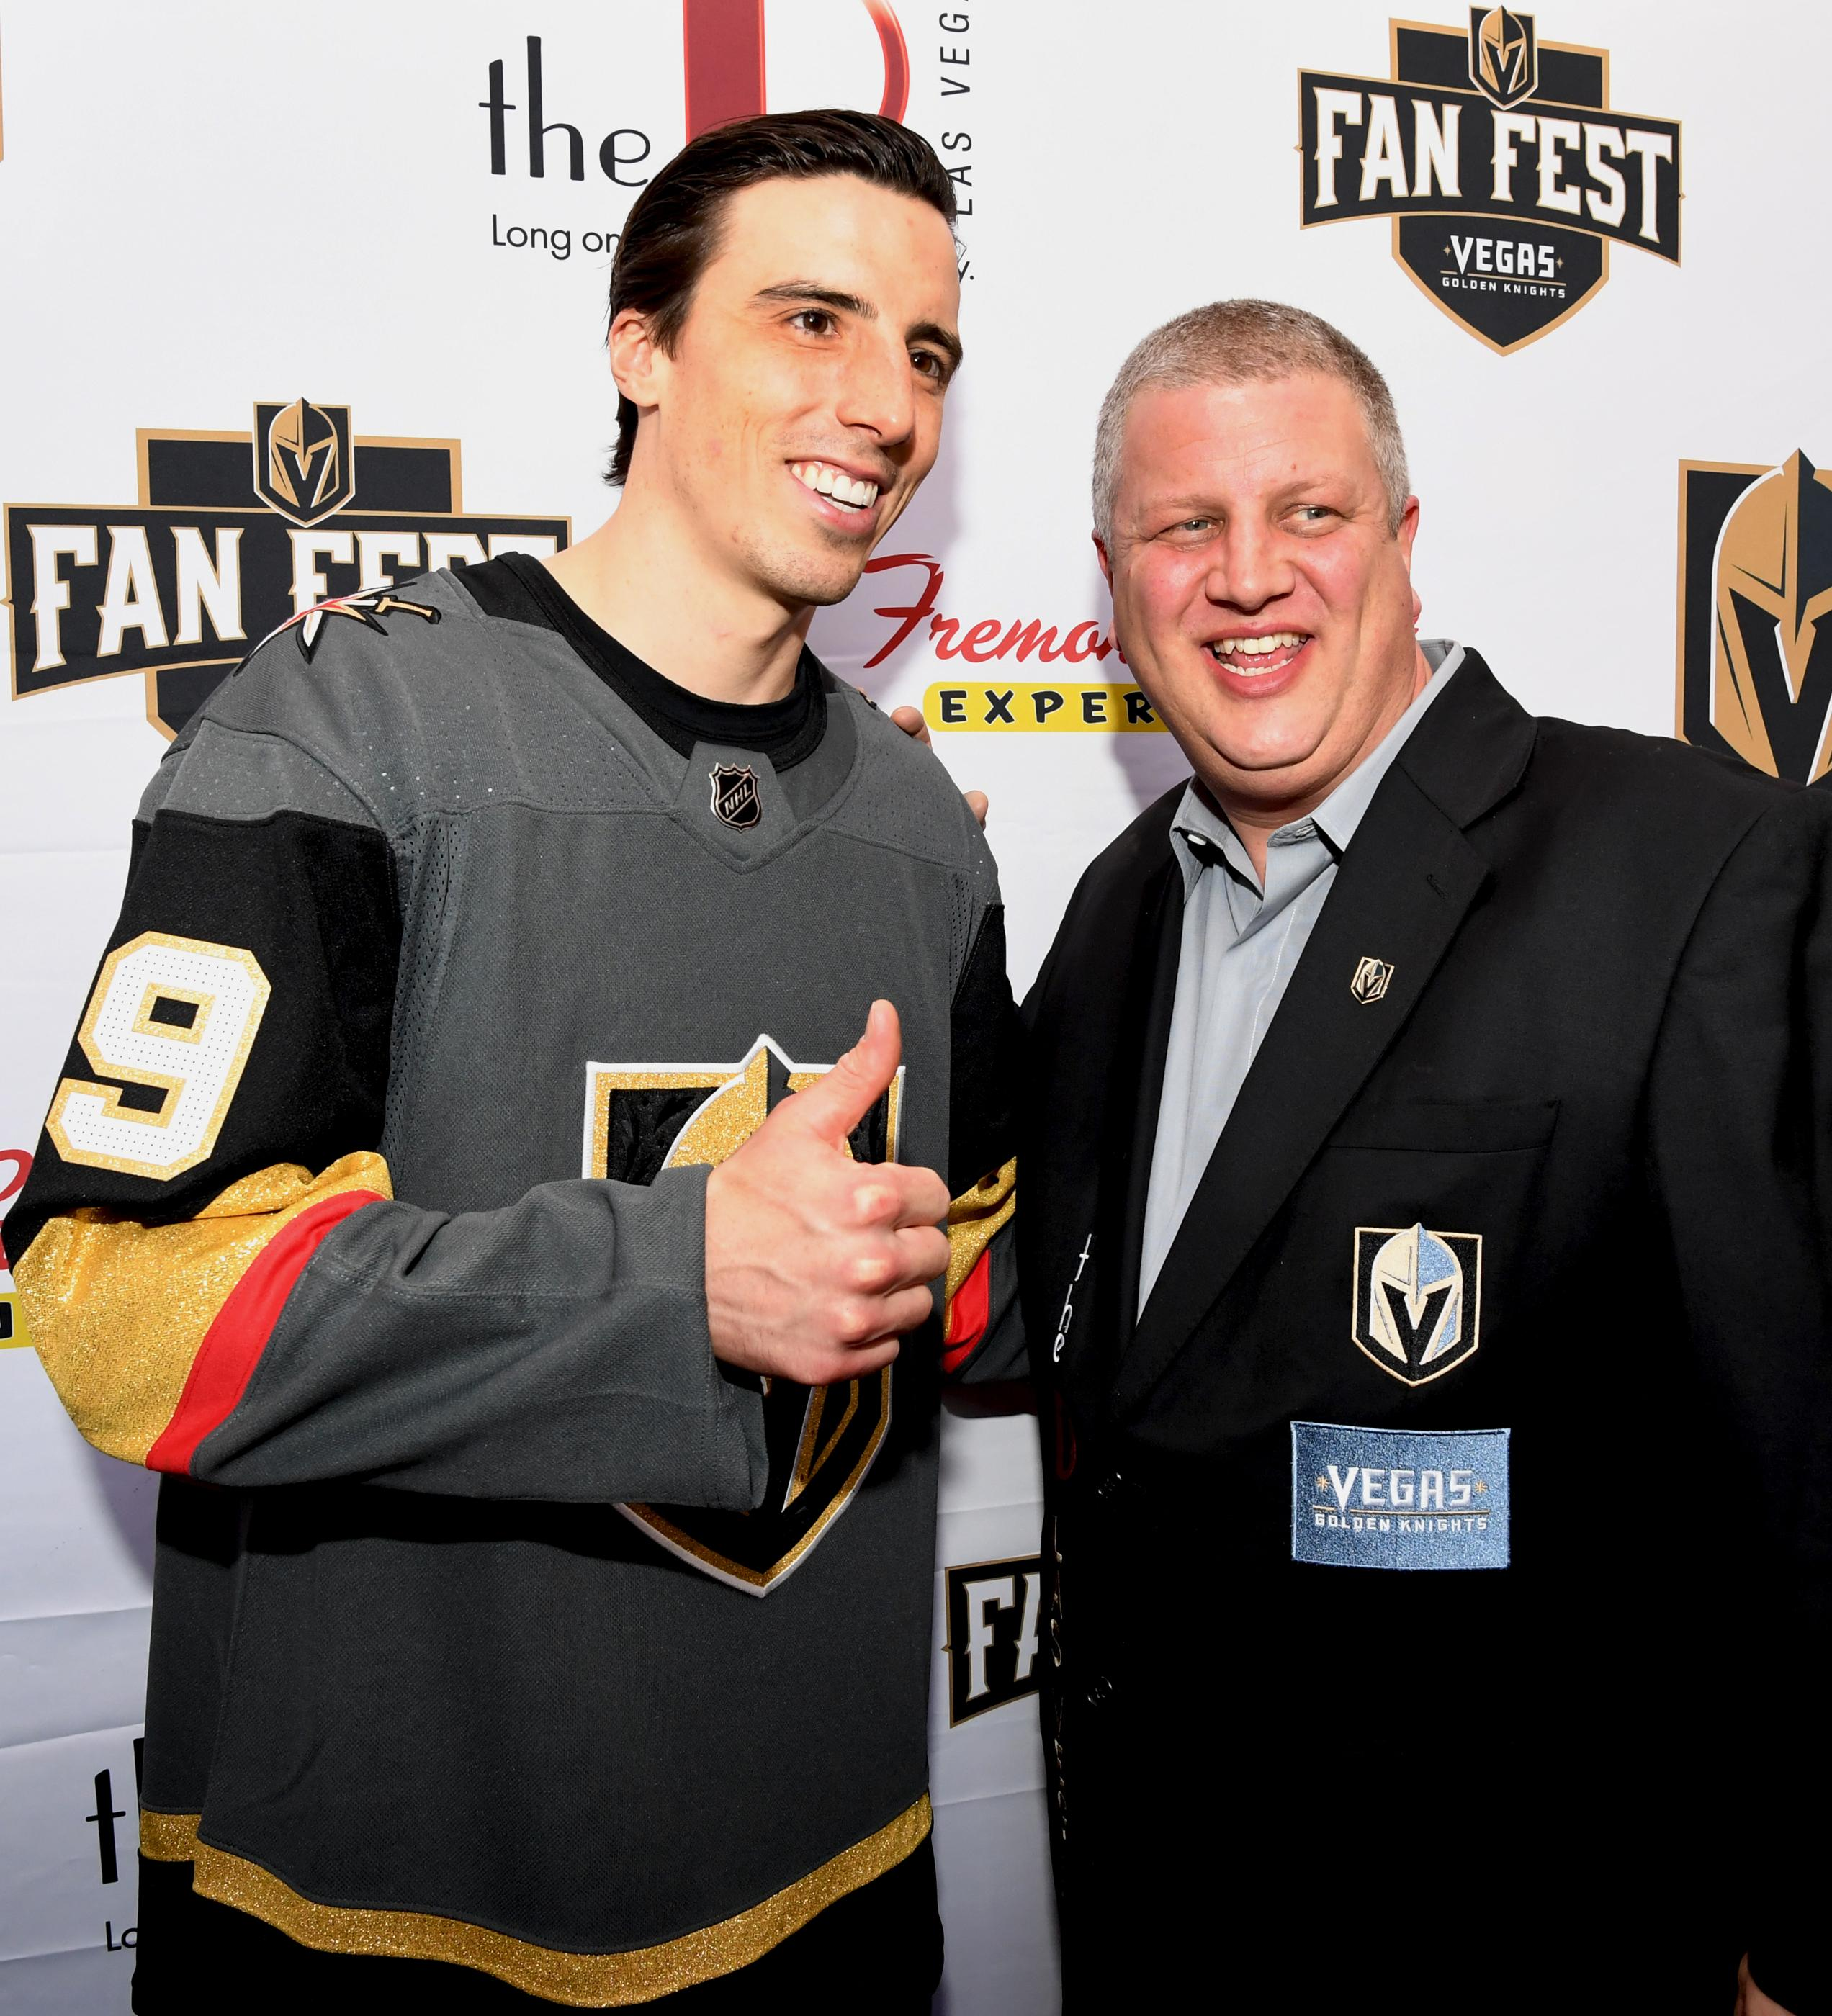 The Golden Knights host a Fan Fest with the D Las Vegas and Fremont Street Experience. Sunday, January 14, 2017. CREDIT: Glenn Pinkerton/Las Vegas News Bureau